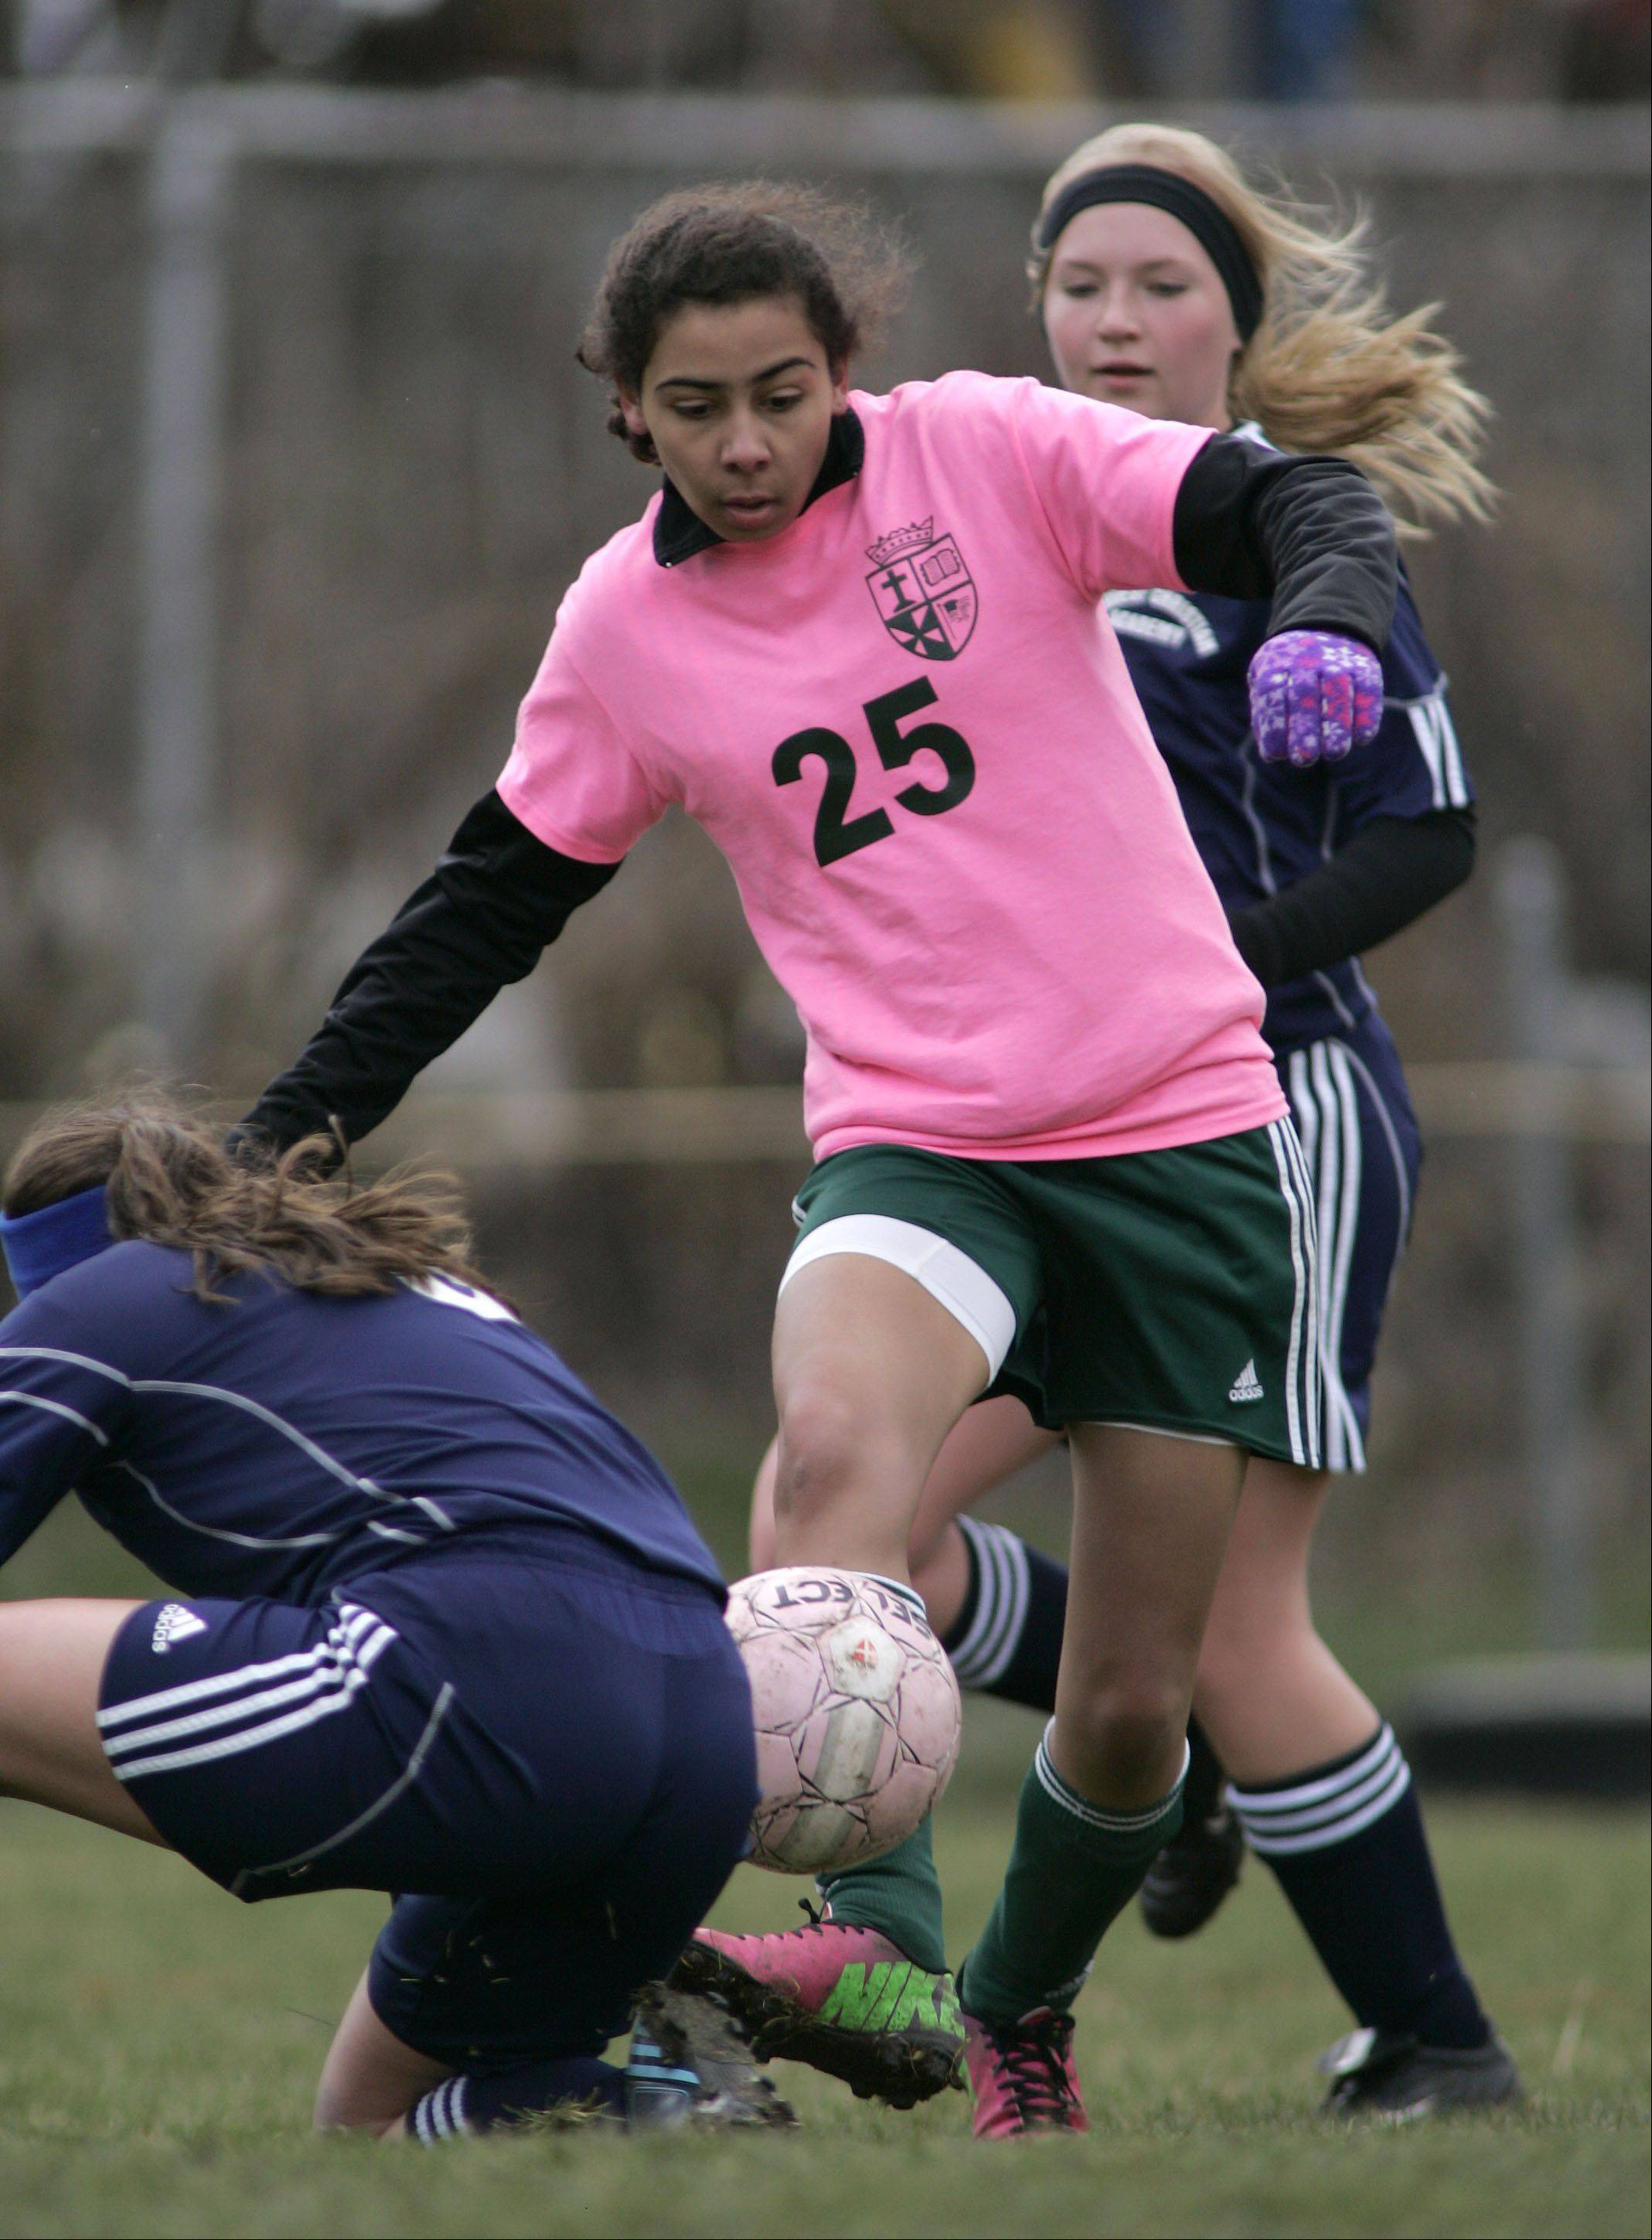 St. Edward's Theresa McFadden (25) weaves her way between two Harvest Christian girls during soccer in Elgin Saturday.